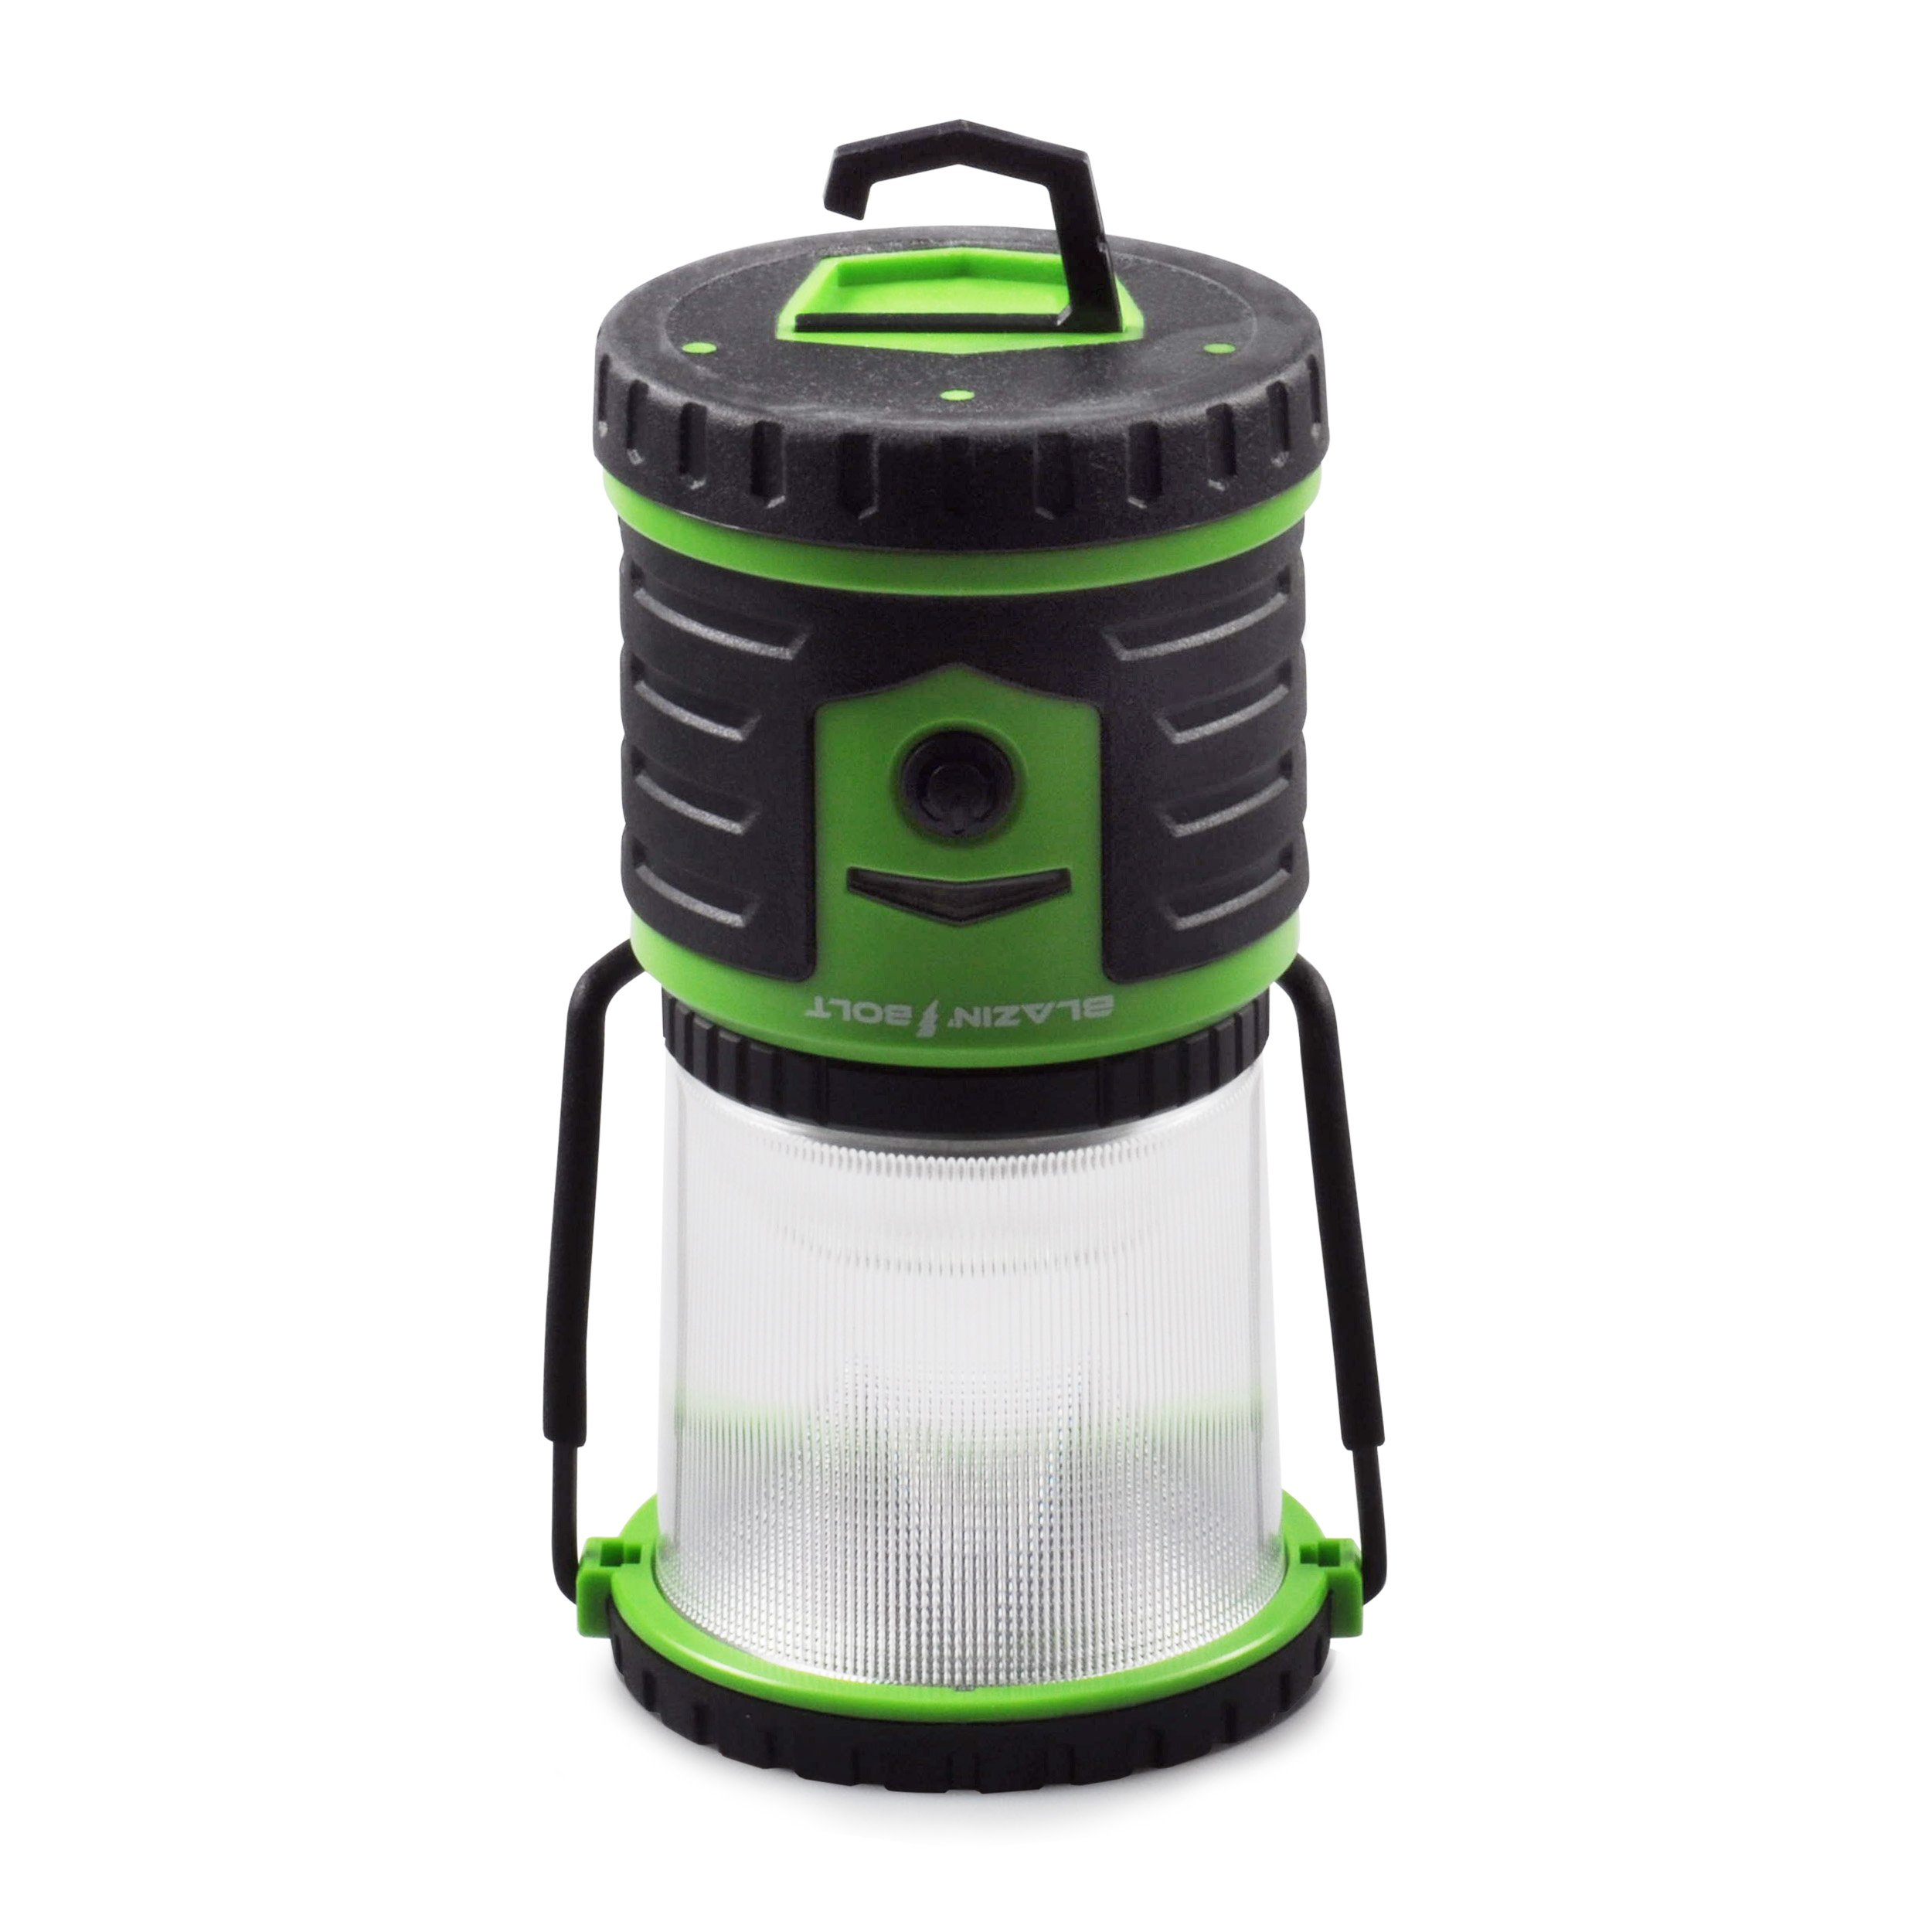 Blazin' Bison Brightest Rechargeable LED Lantern | 400 Hour Runtime | Phone Charger | Hurricane, Emergency, Storm (400 Lumen, Green) by Blazin' Bison (Image #5)